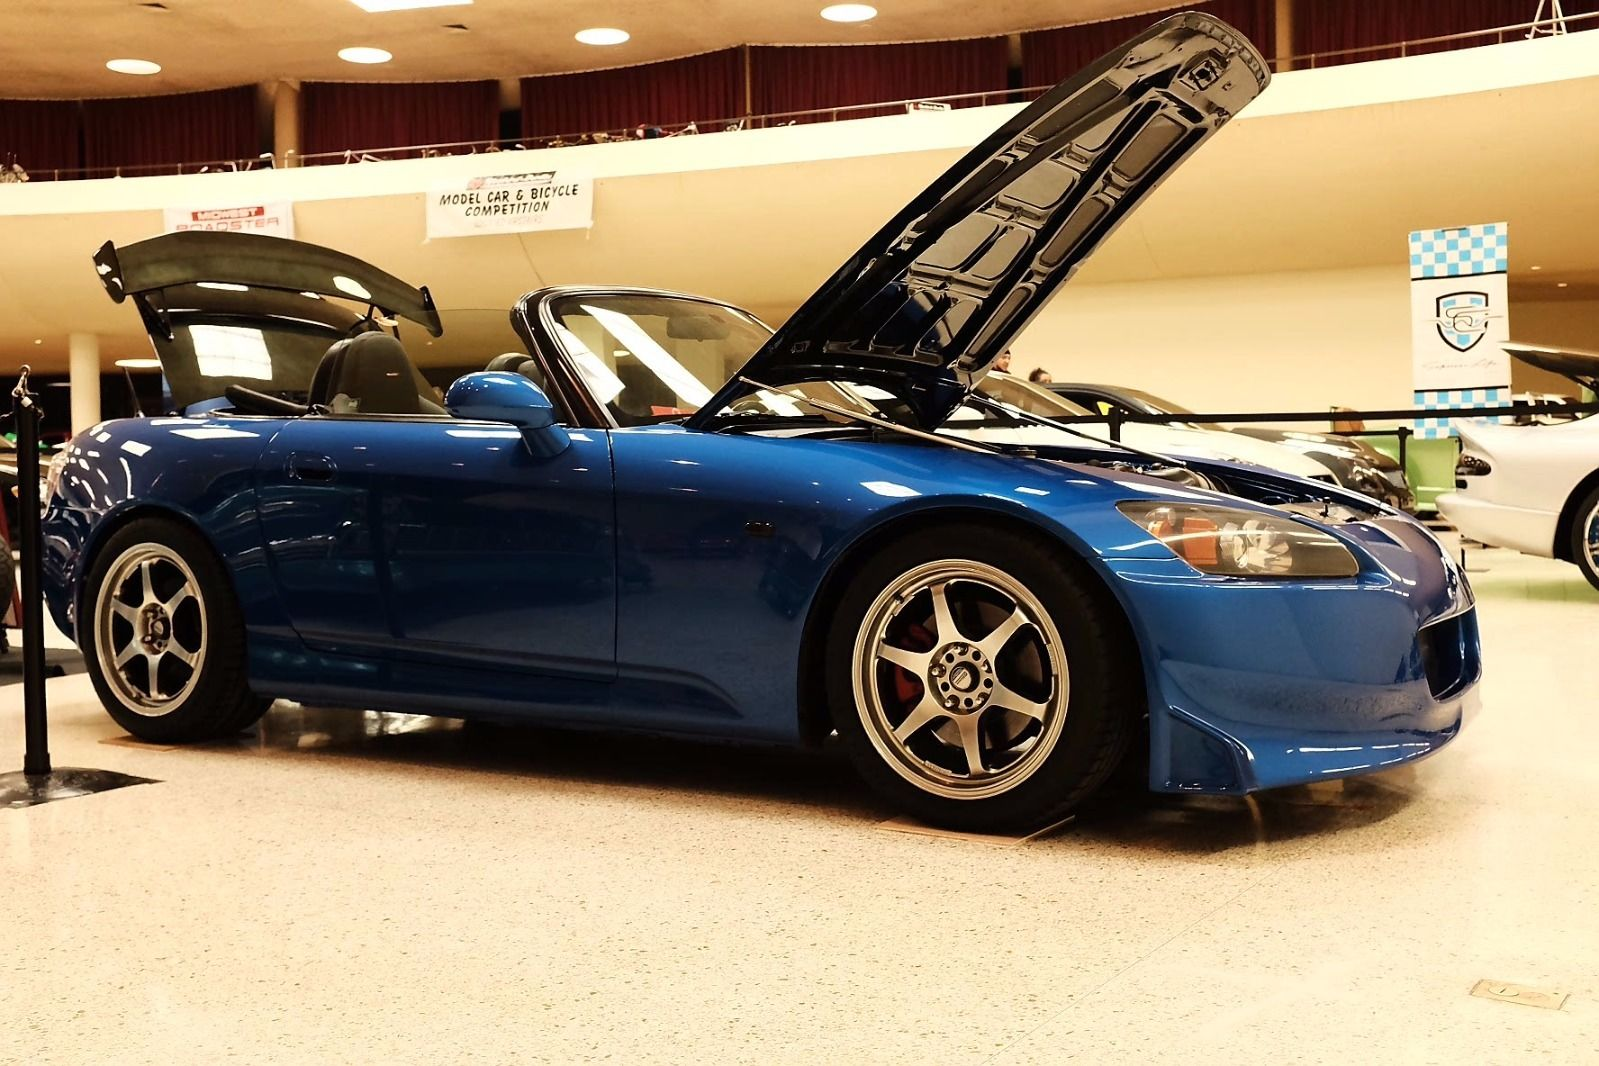 For Sale 2002 Honda S2000 With A Ls1 V8 Engine Swap Depot